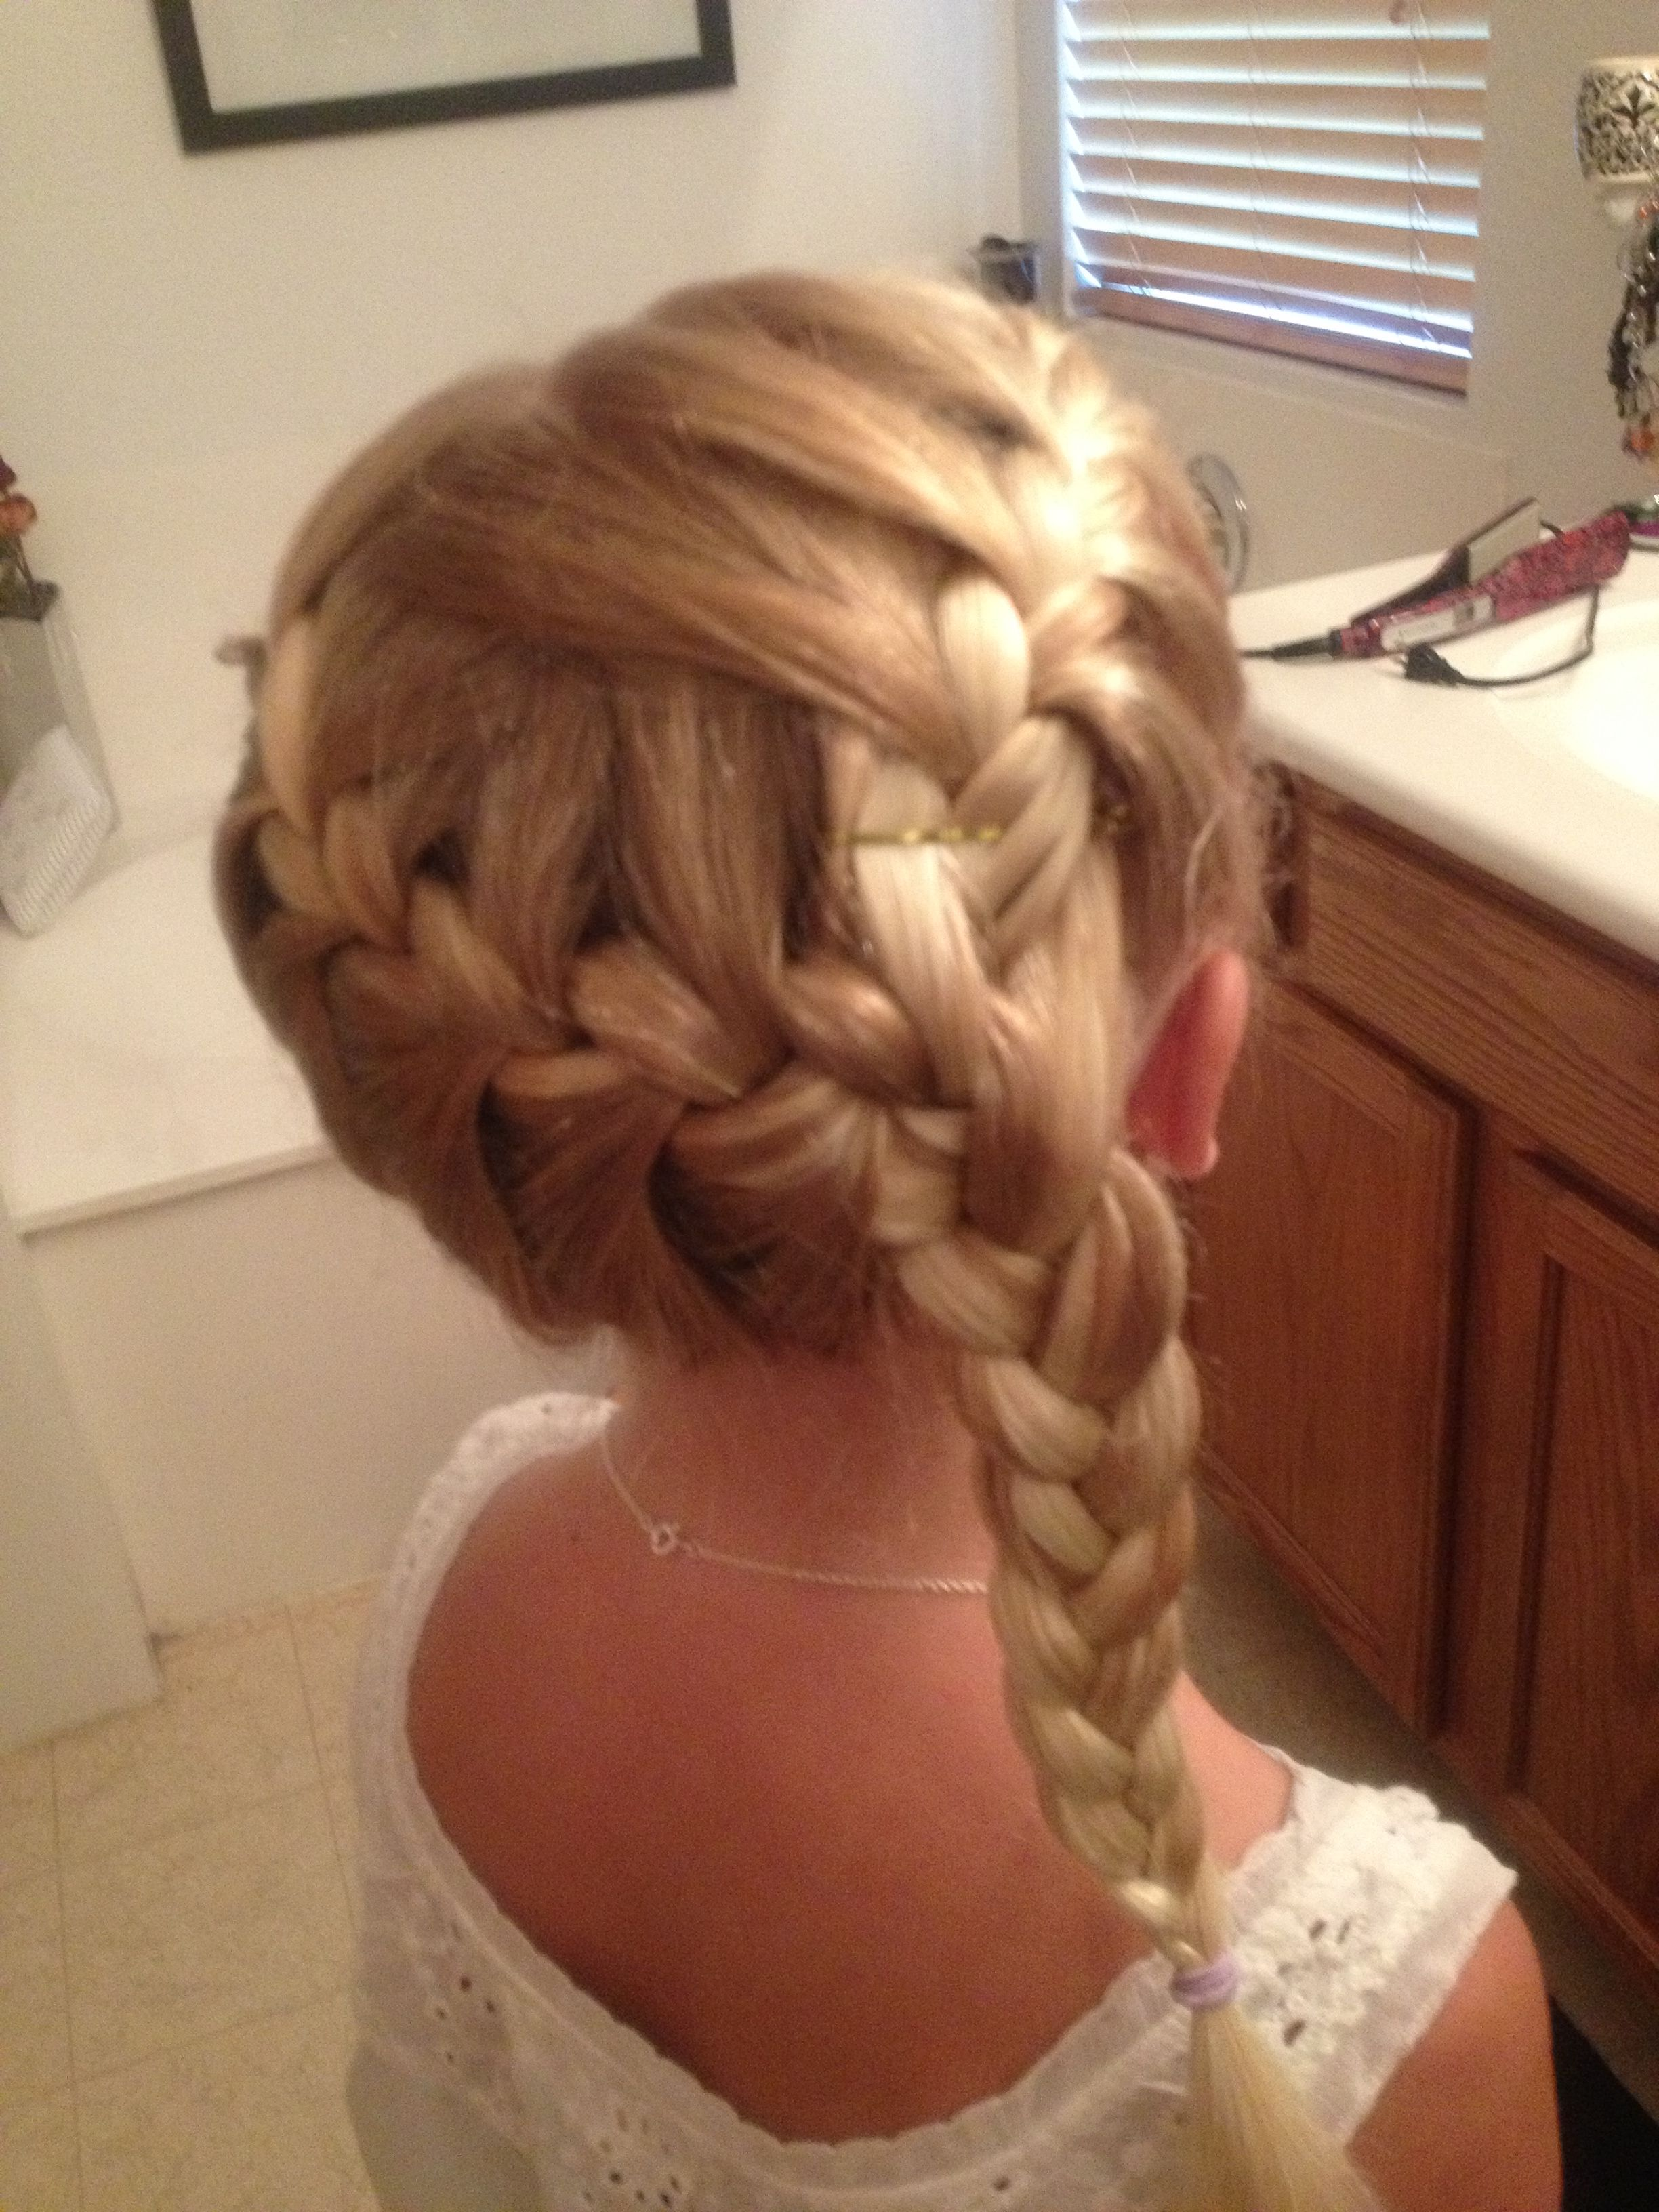 Hairstyle for girls no active link just an idea hairstyles for